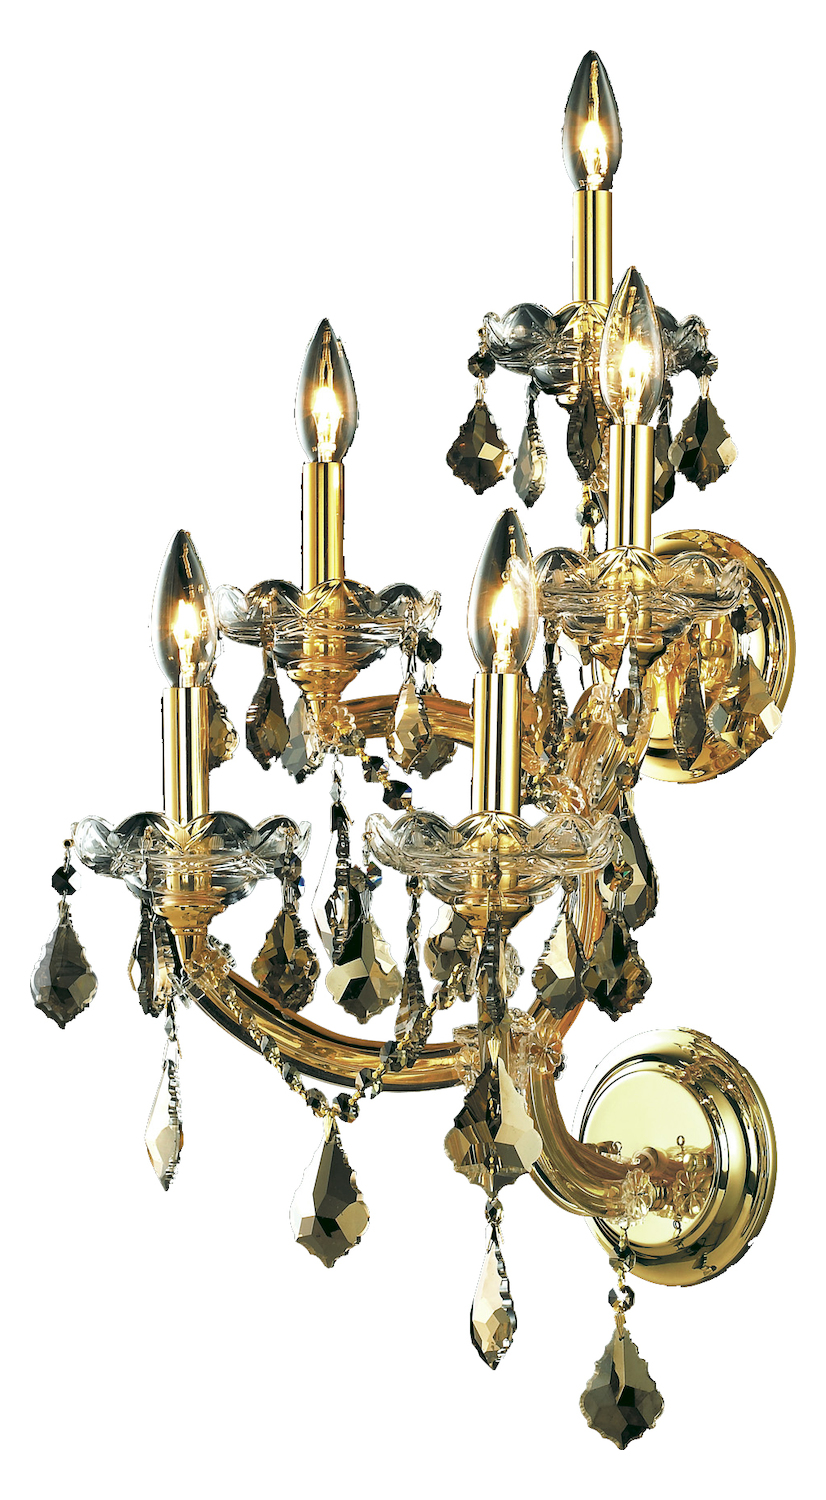 Elegant Lighting Royal Cut Smoky Golden Teak Crystal Maria Theresa 5-Light Crystal Wall Sconce ...